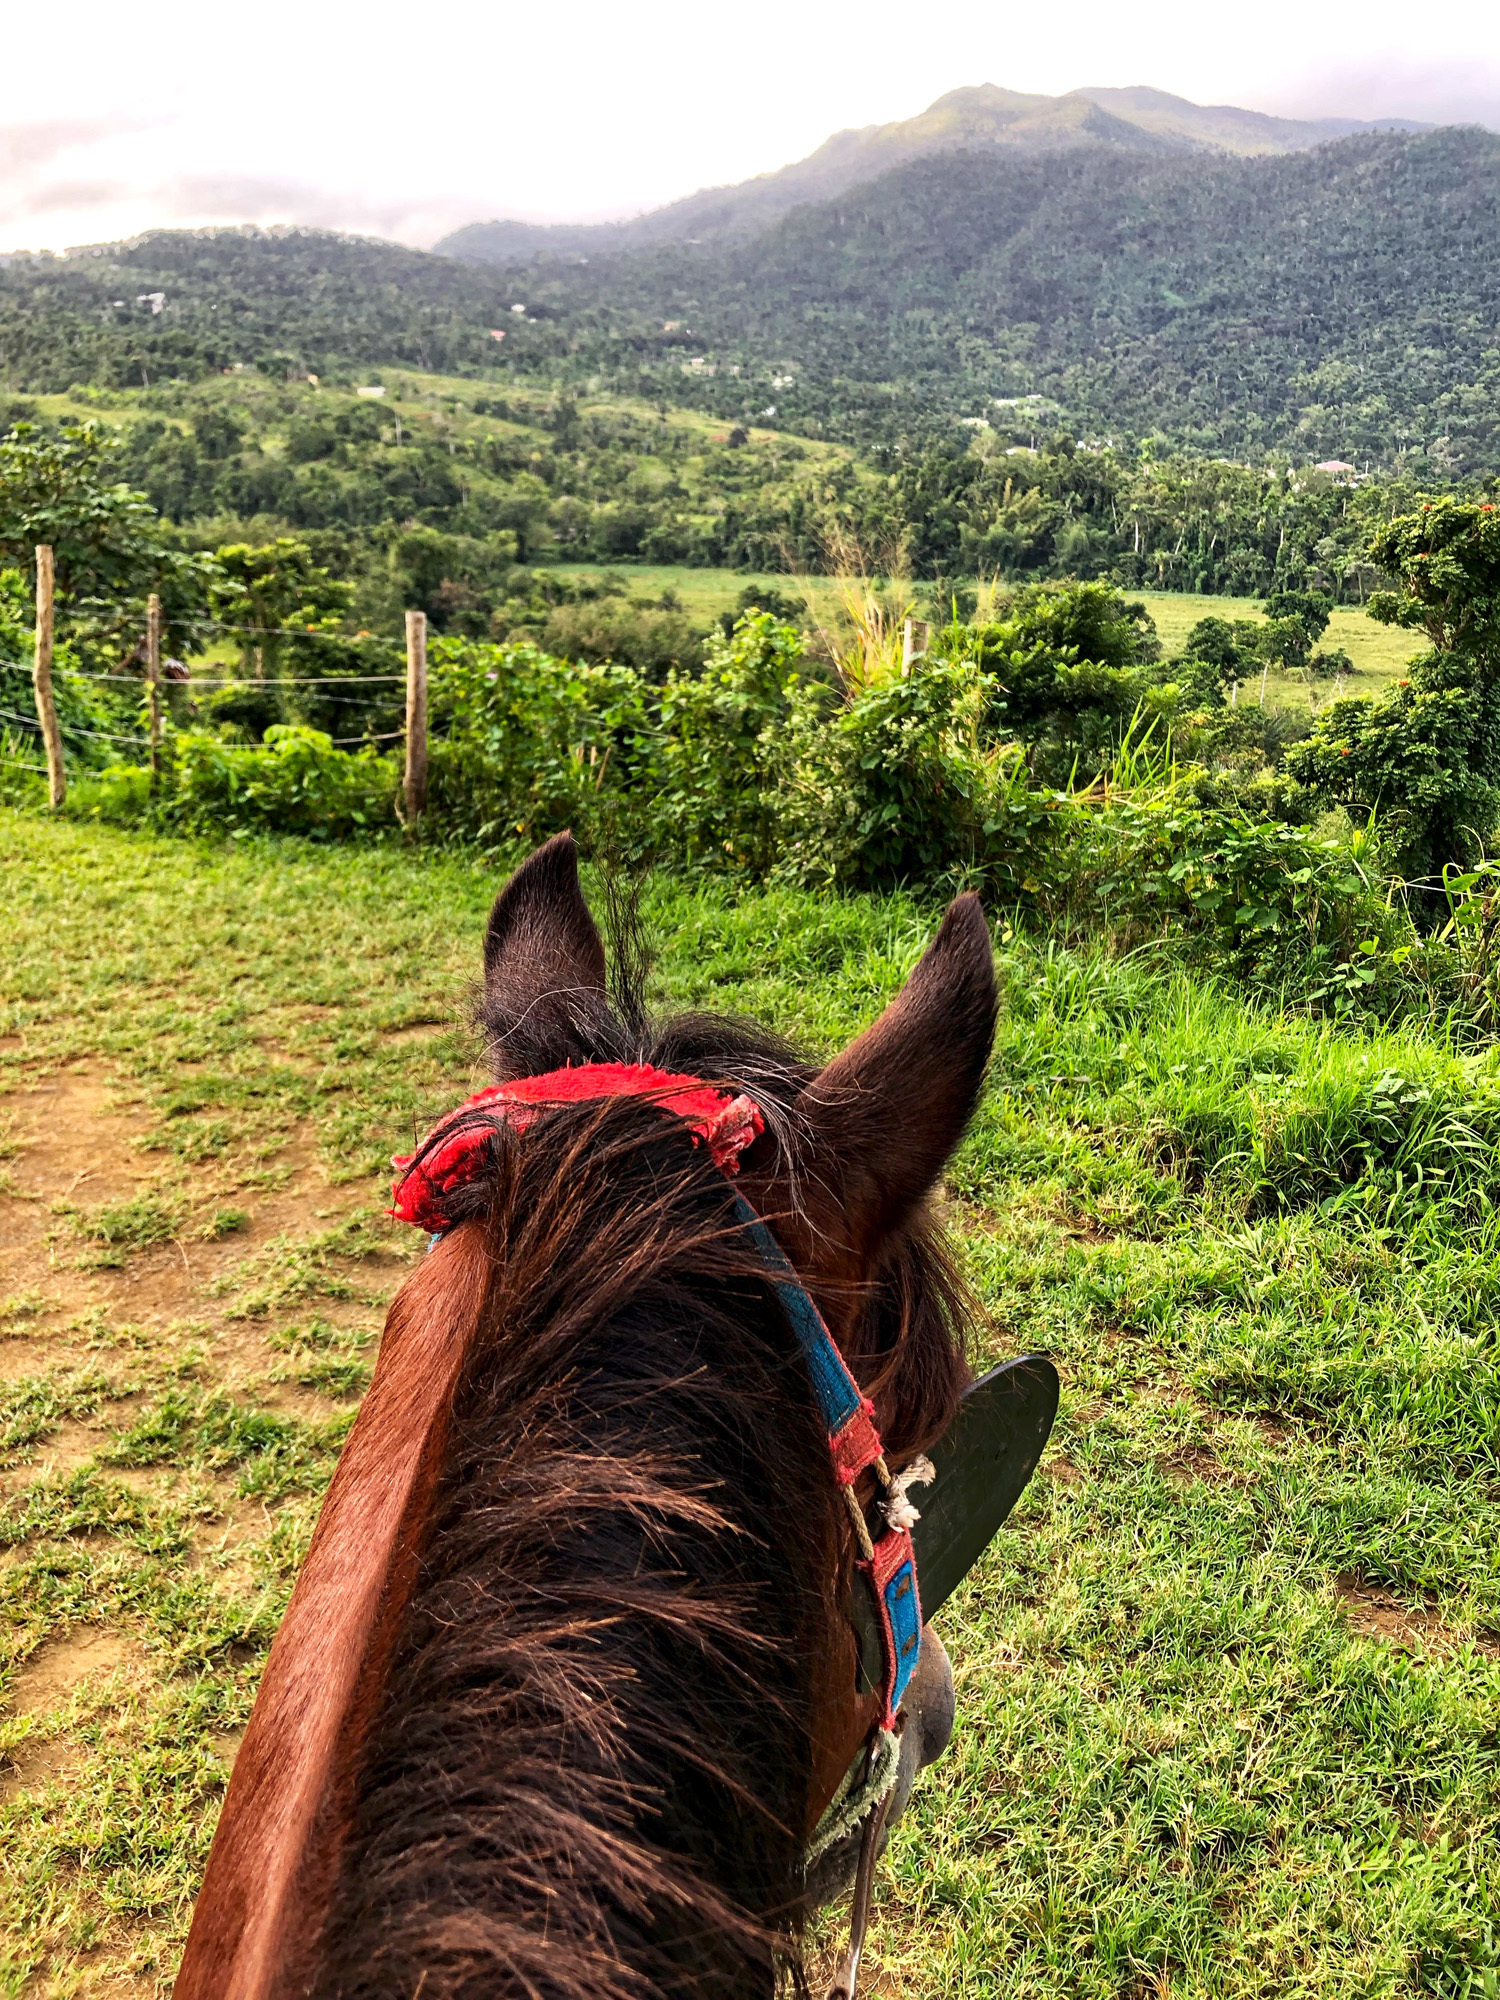 Puerto-Rico-horse-back-riding.jpg?mtime=20190310123451#asset:105125